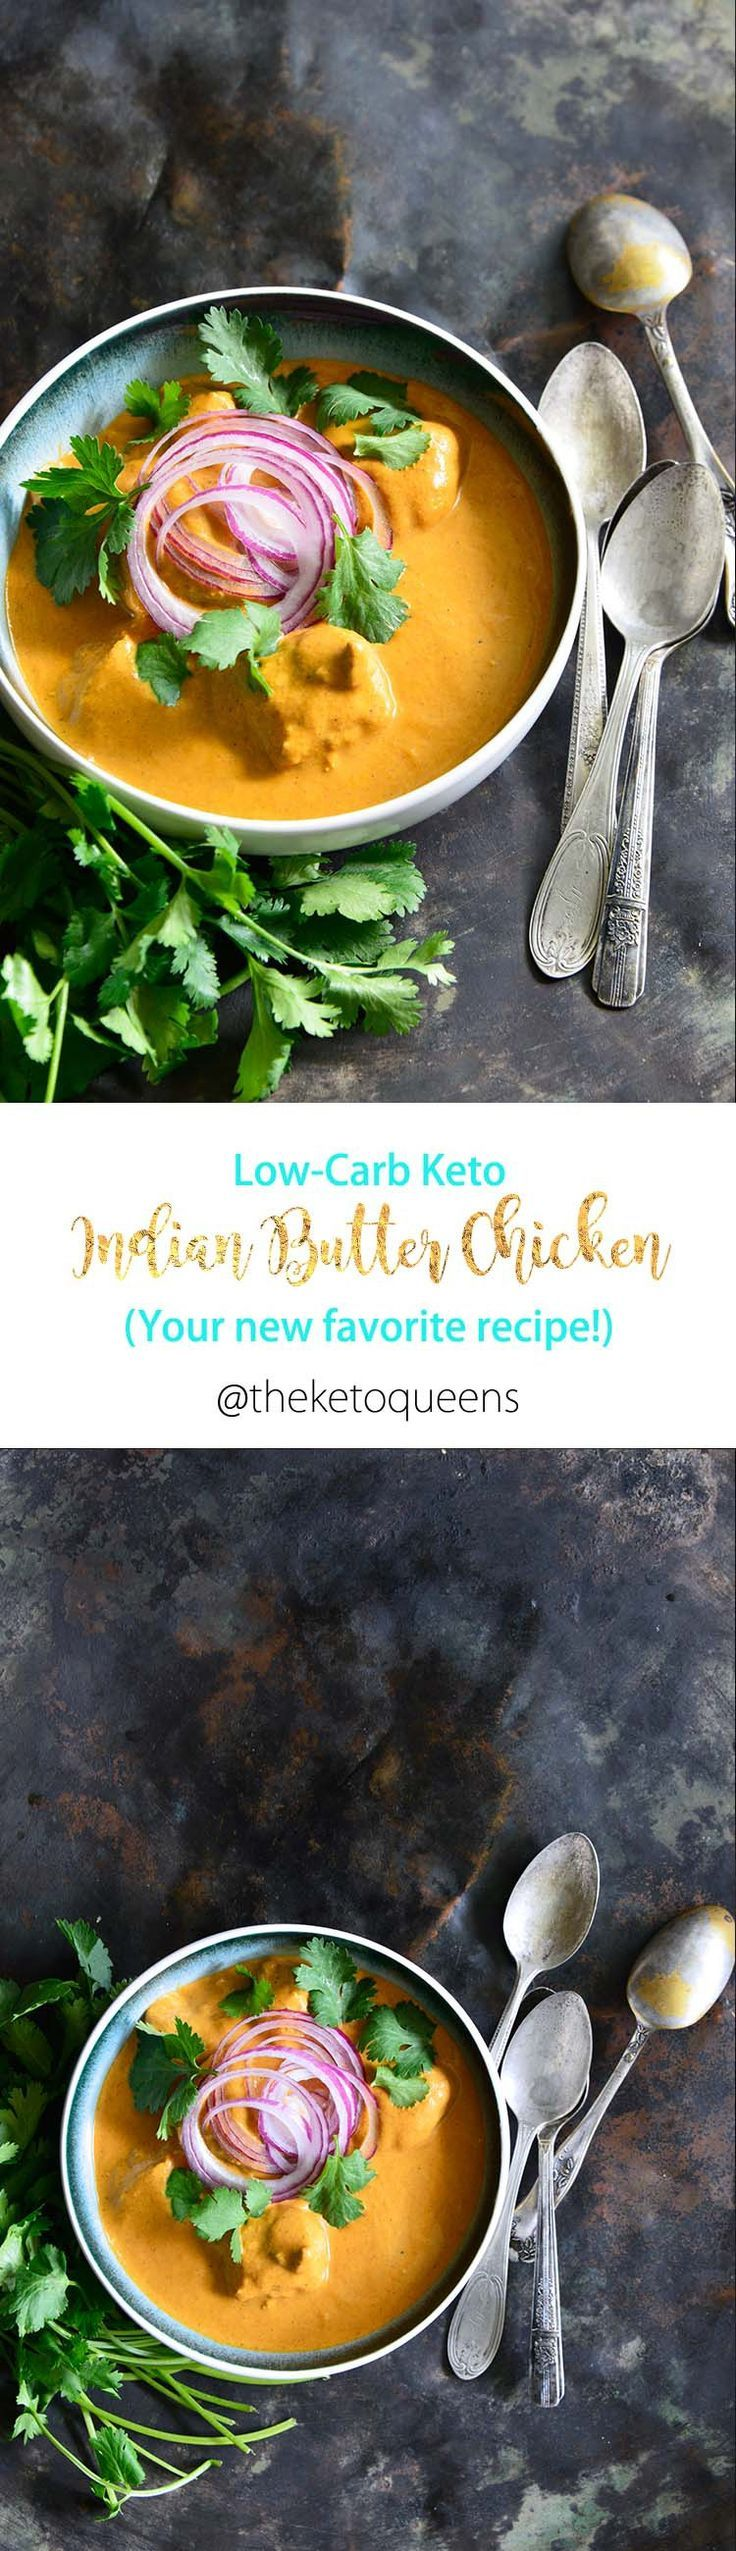 Low Carb Keto Indian Butter Chicken Recipe Butter